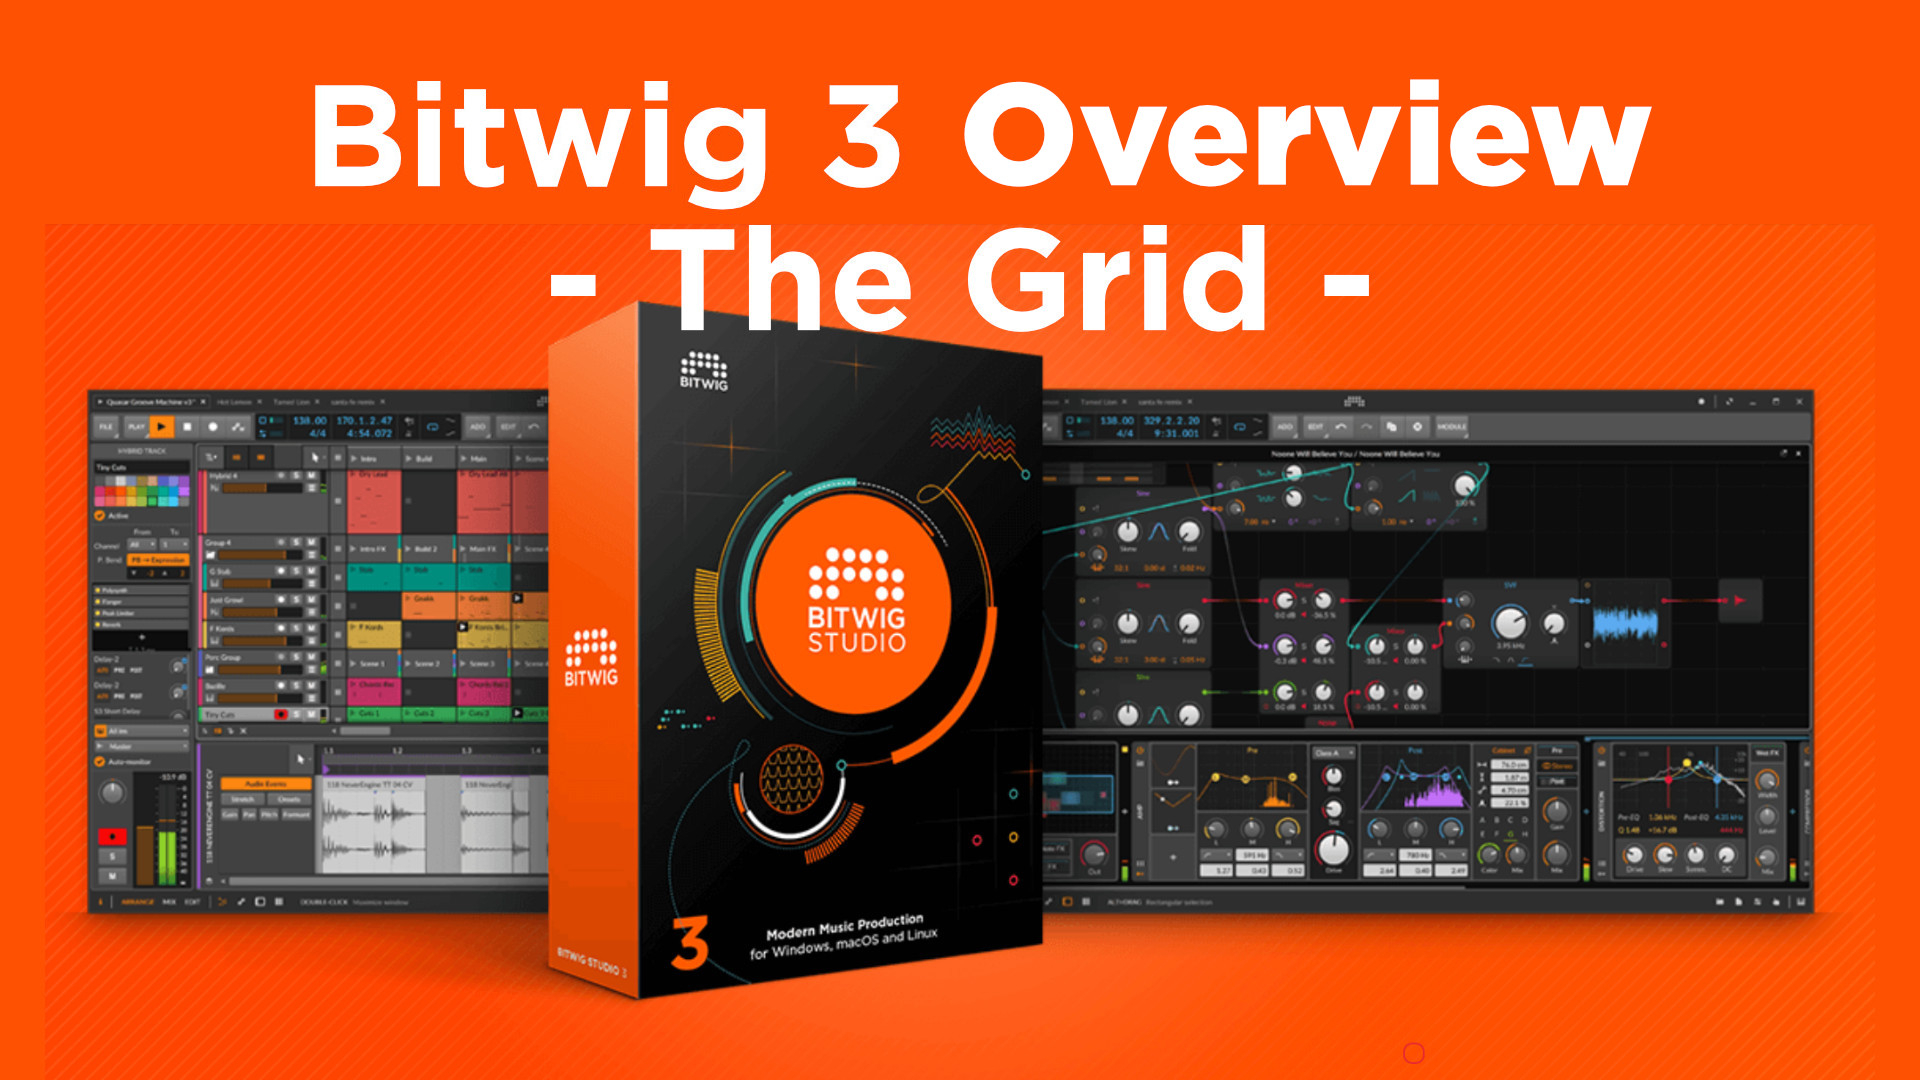 Bitwig 3 overview the grid